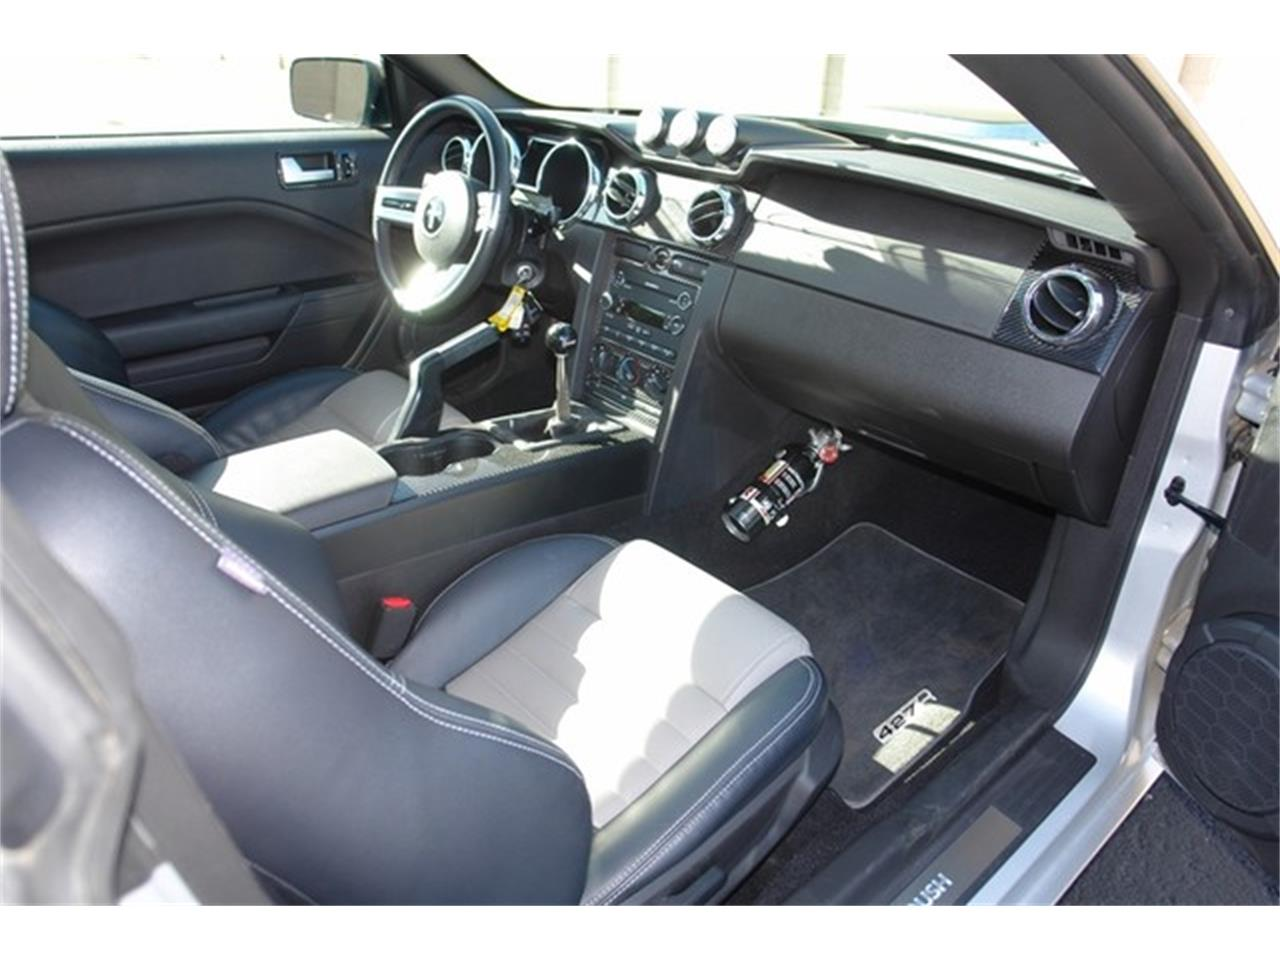 Large Picture of '08 Ford Mustang located in Arizona Offered by Arizona Classic Car Sales - GEAQ